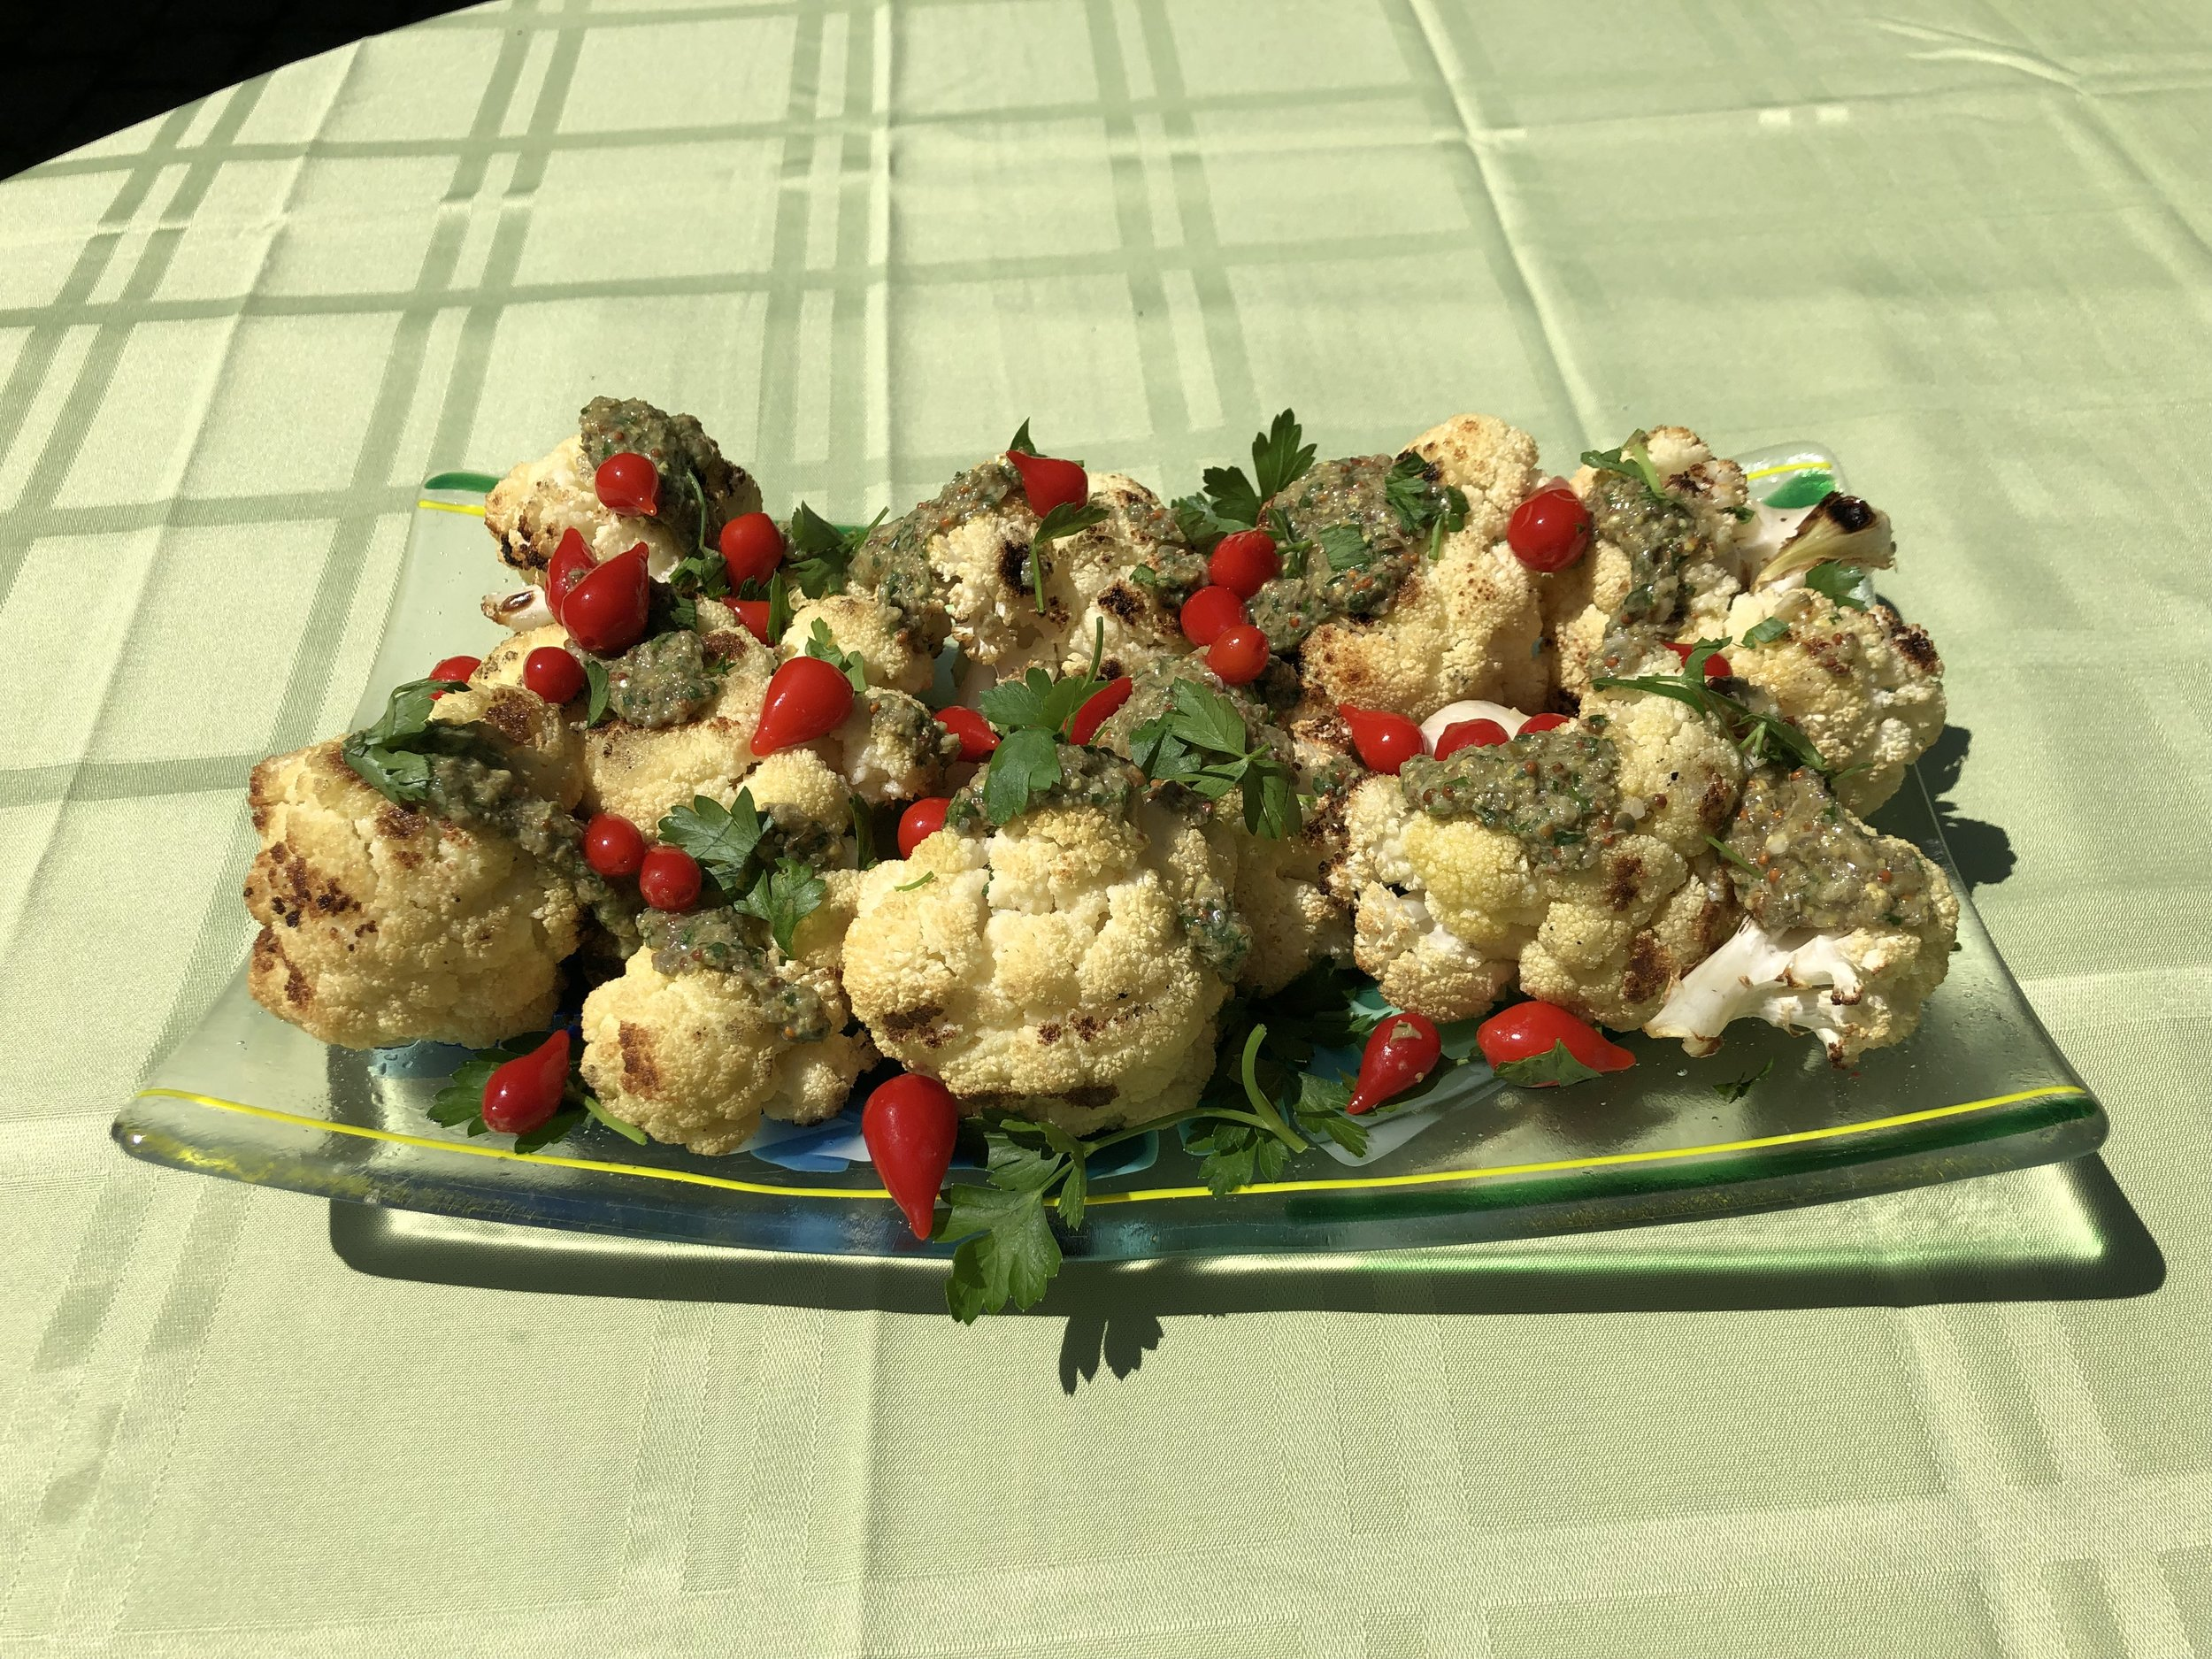 grilled cauliflower with mustard, capers, and peppers